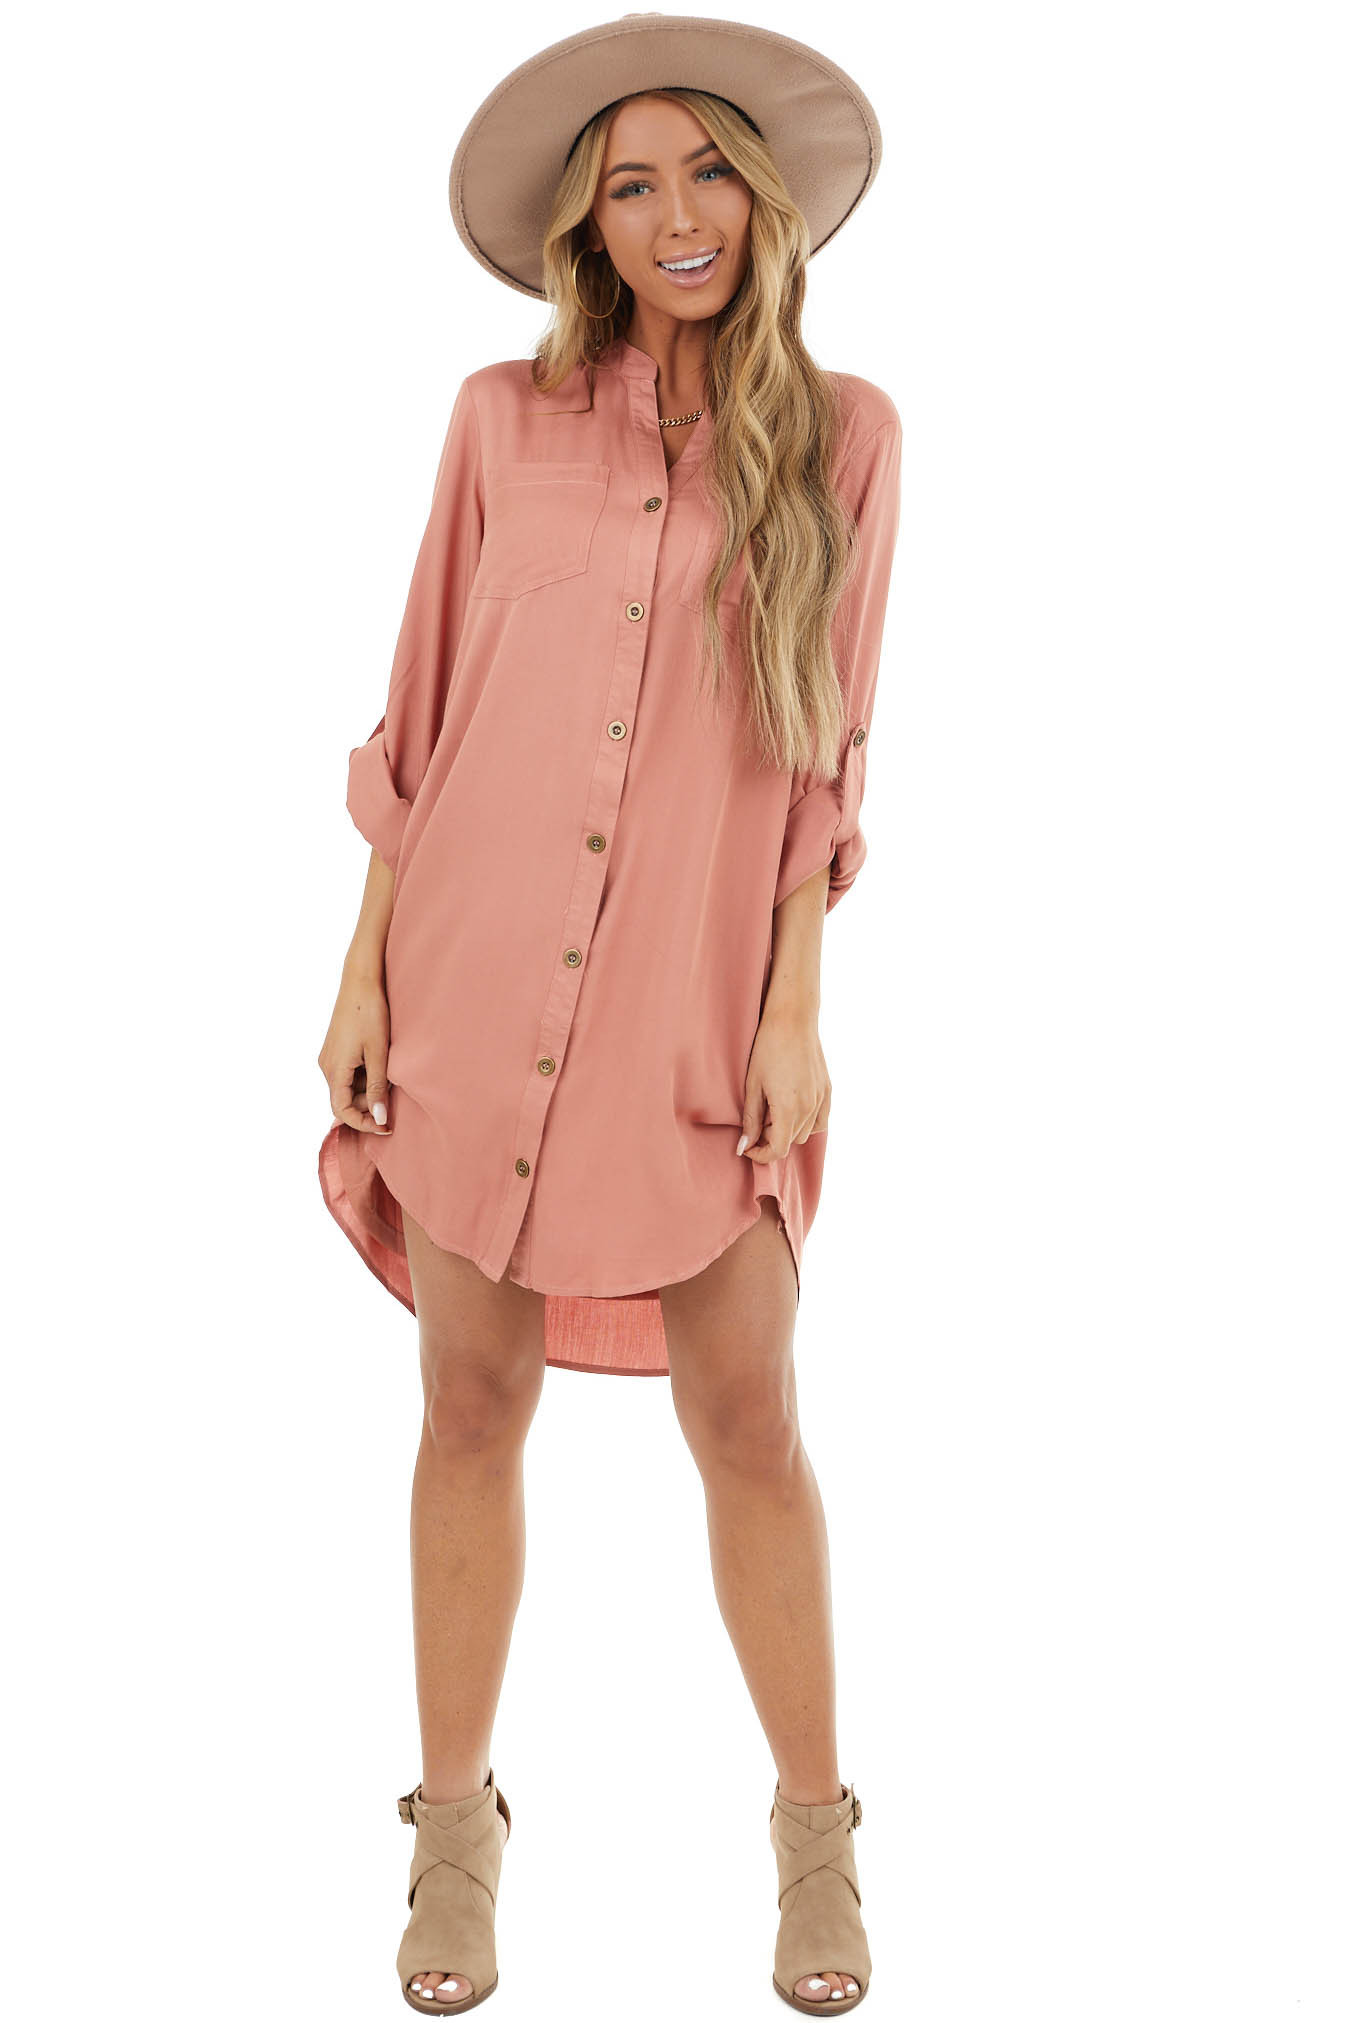 Terracotta Button Down Collared Short Dress with Pockets